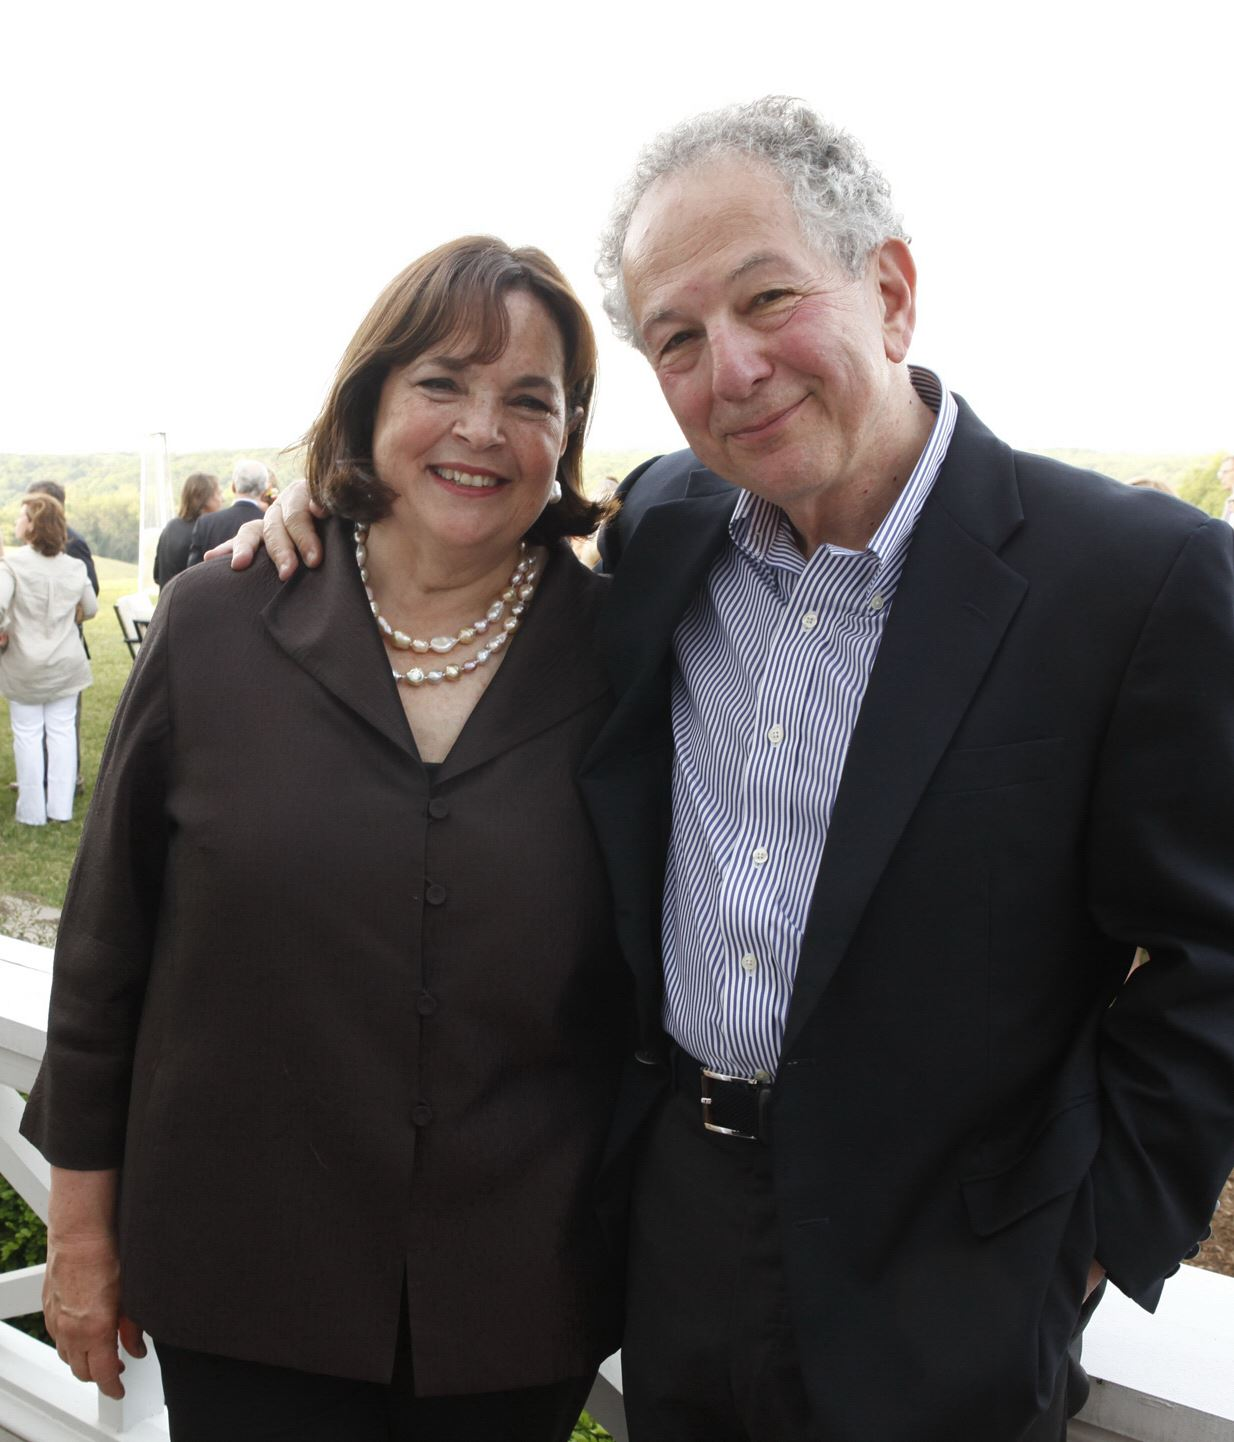 ina and jeffrey garten divorce share the knownledge. Black Bedroom Furniture Sets. Home Design Ideas